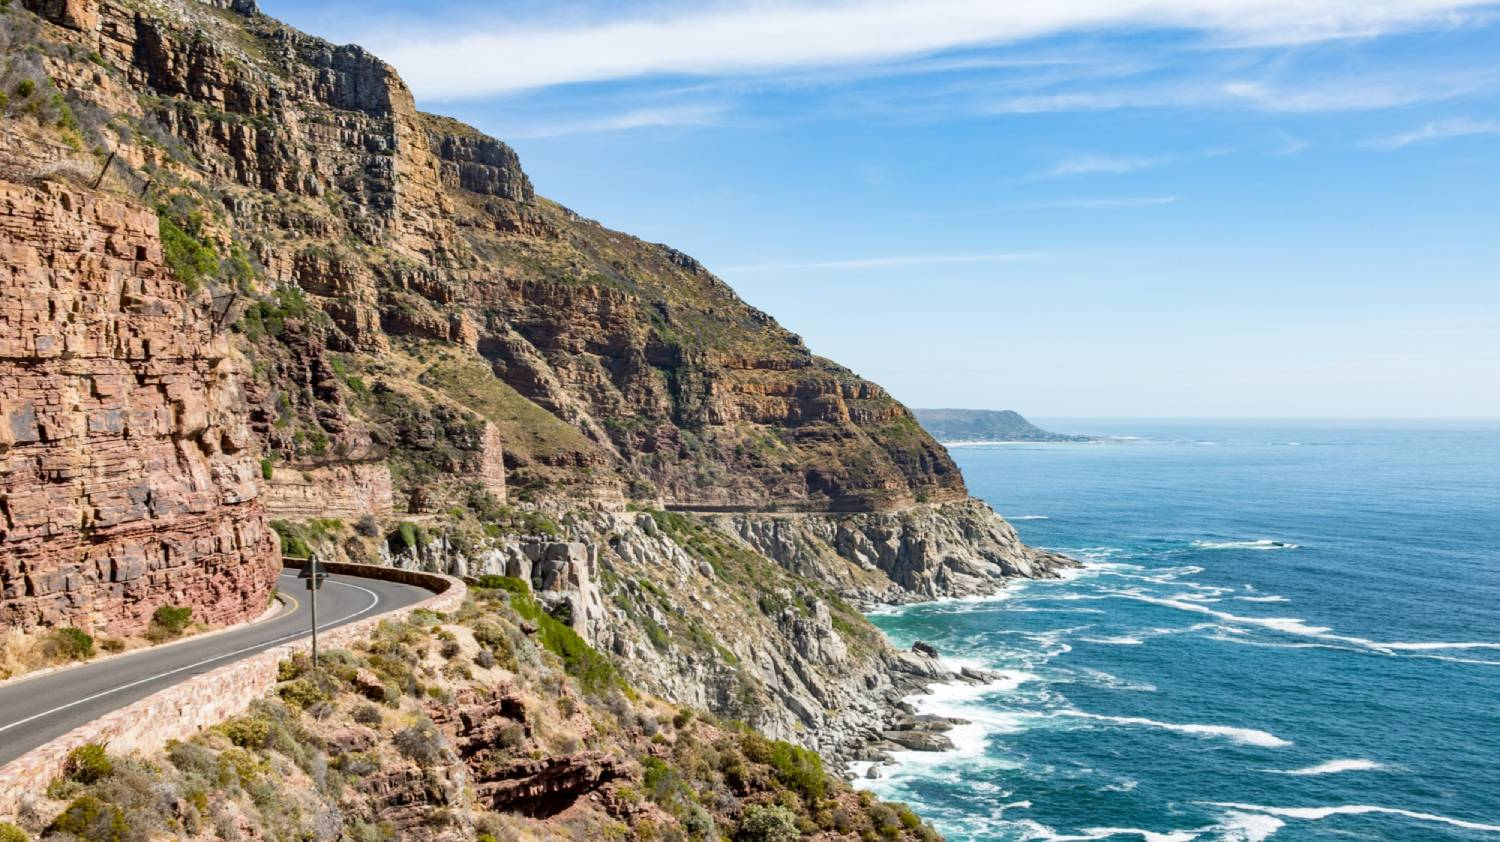 Chapman's Peak Drive - Things To Do In Cape Town